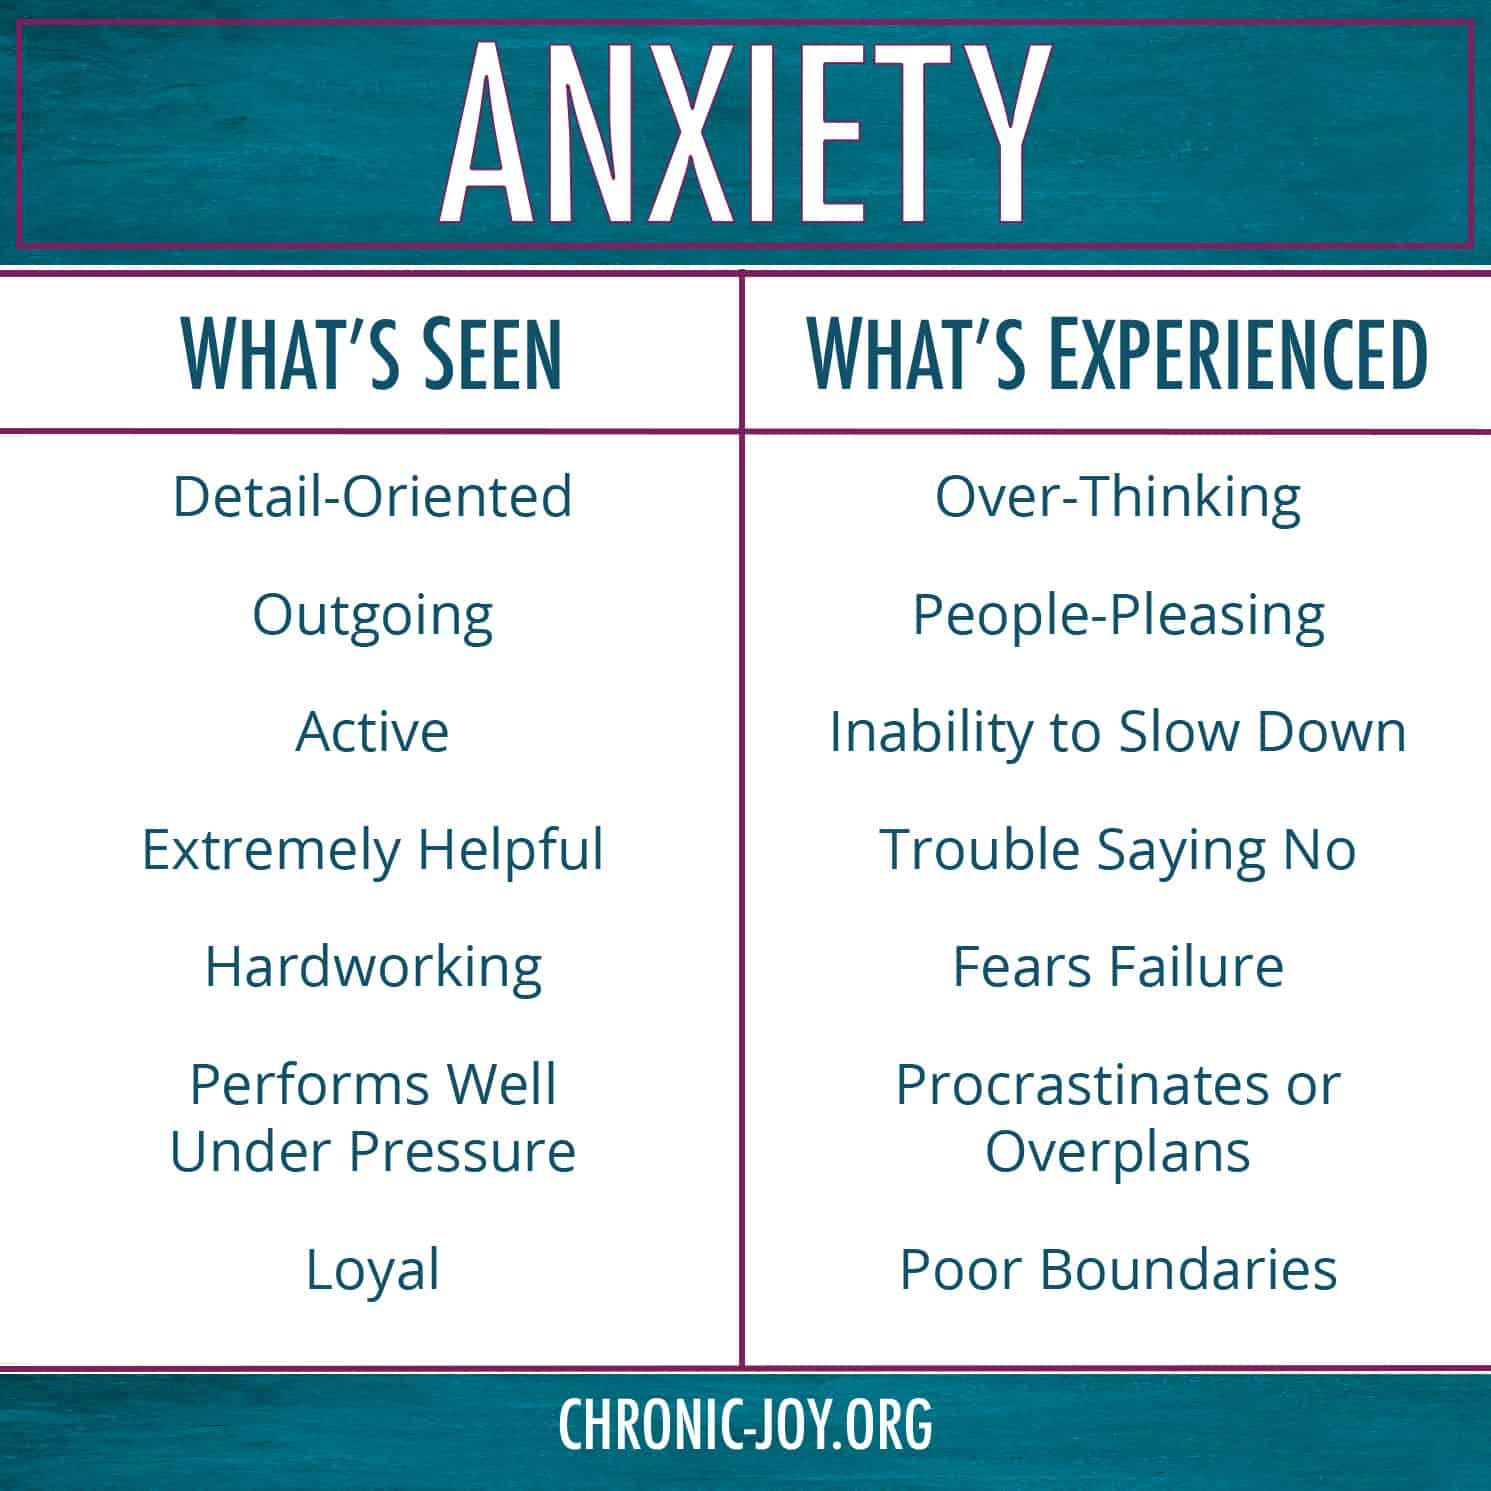 Anxiety: What's Seen/What's Experienced